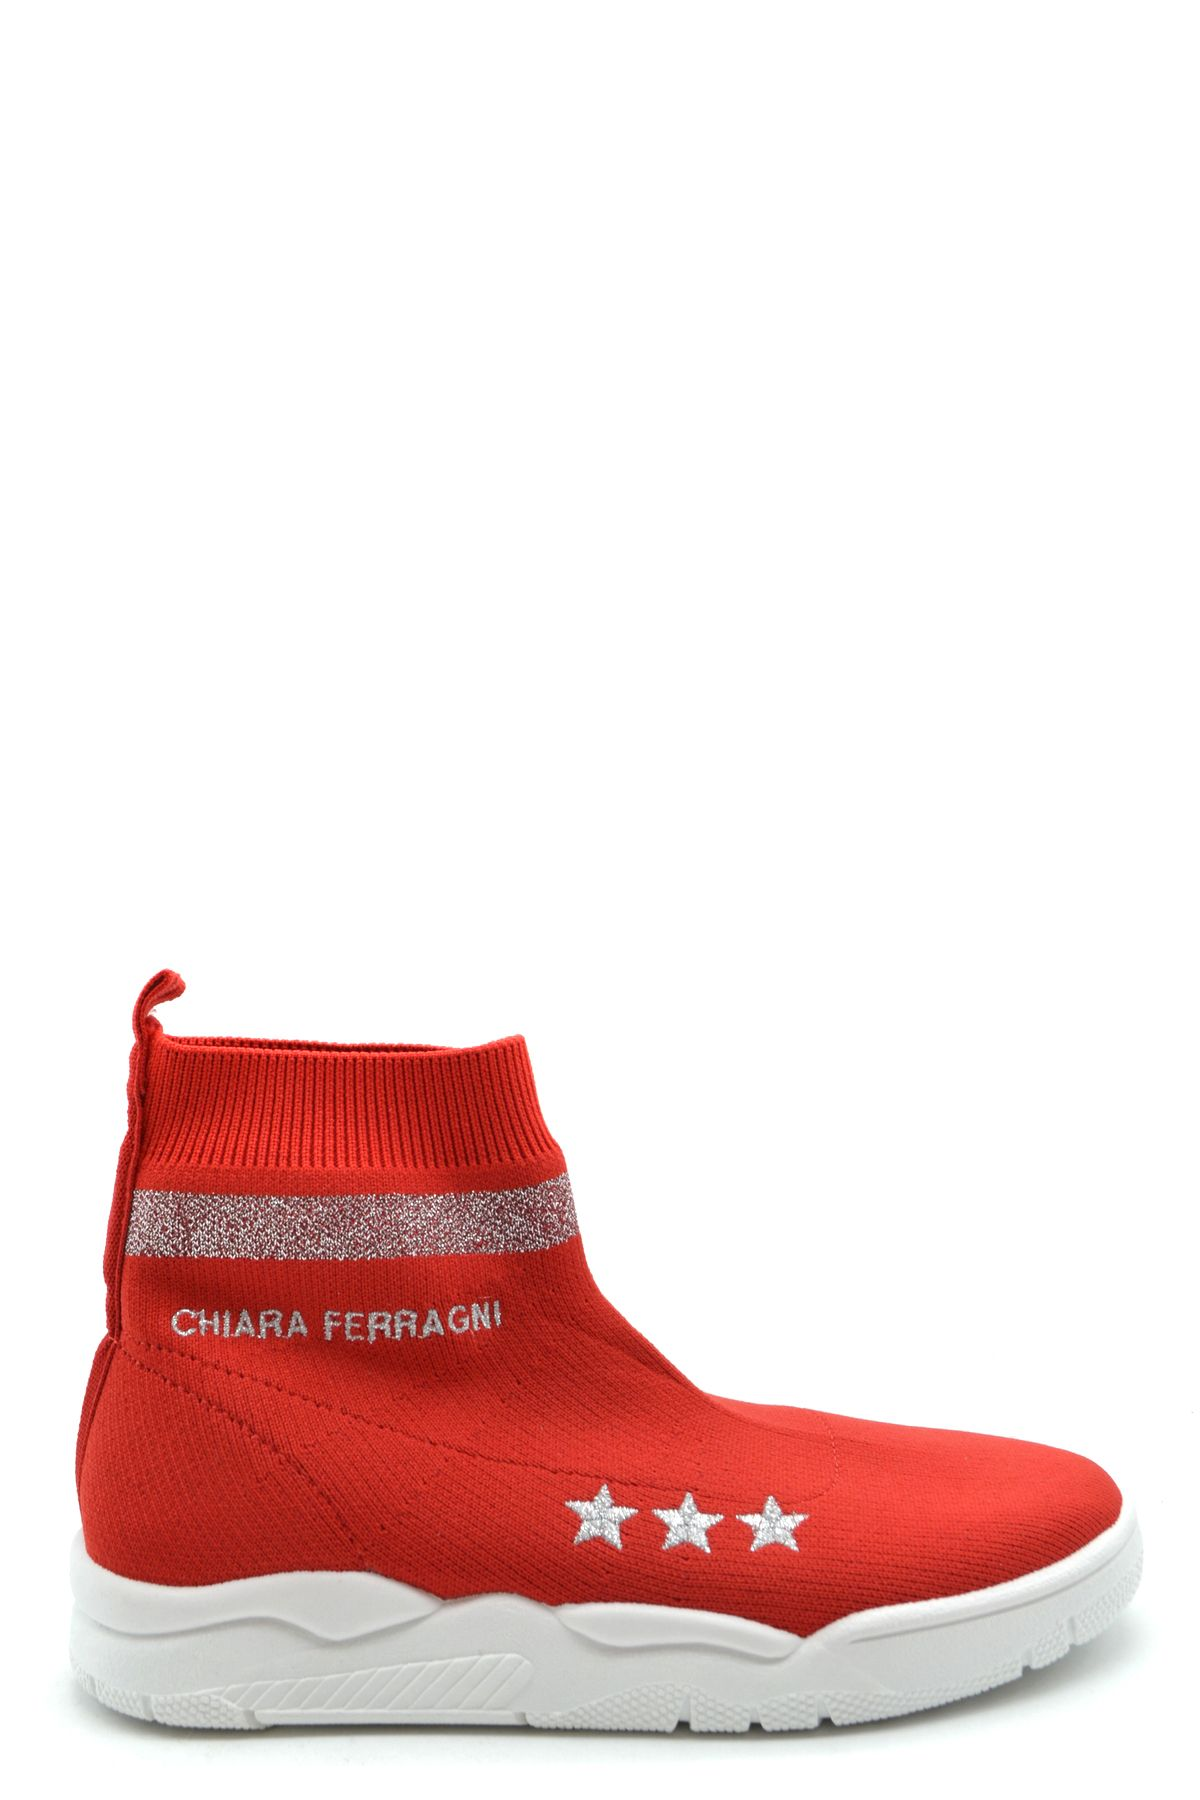 Chiara Ferragni Red Fabric Hi Top Sneakers